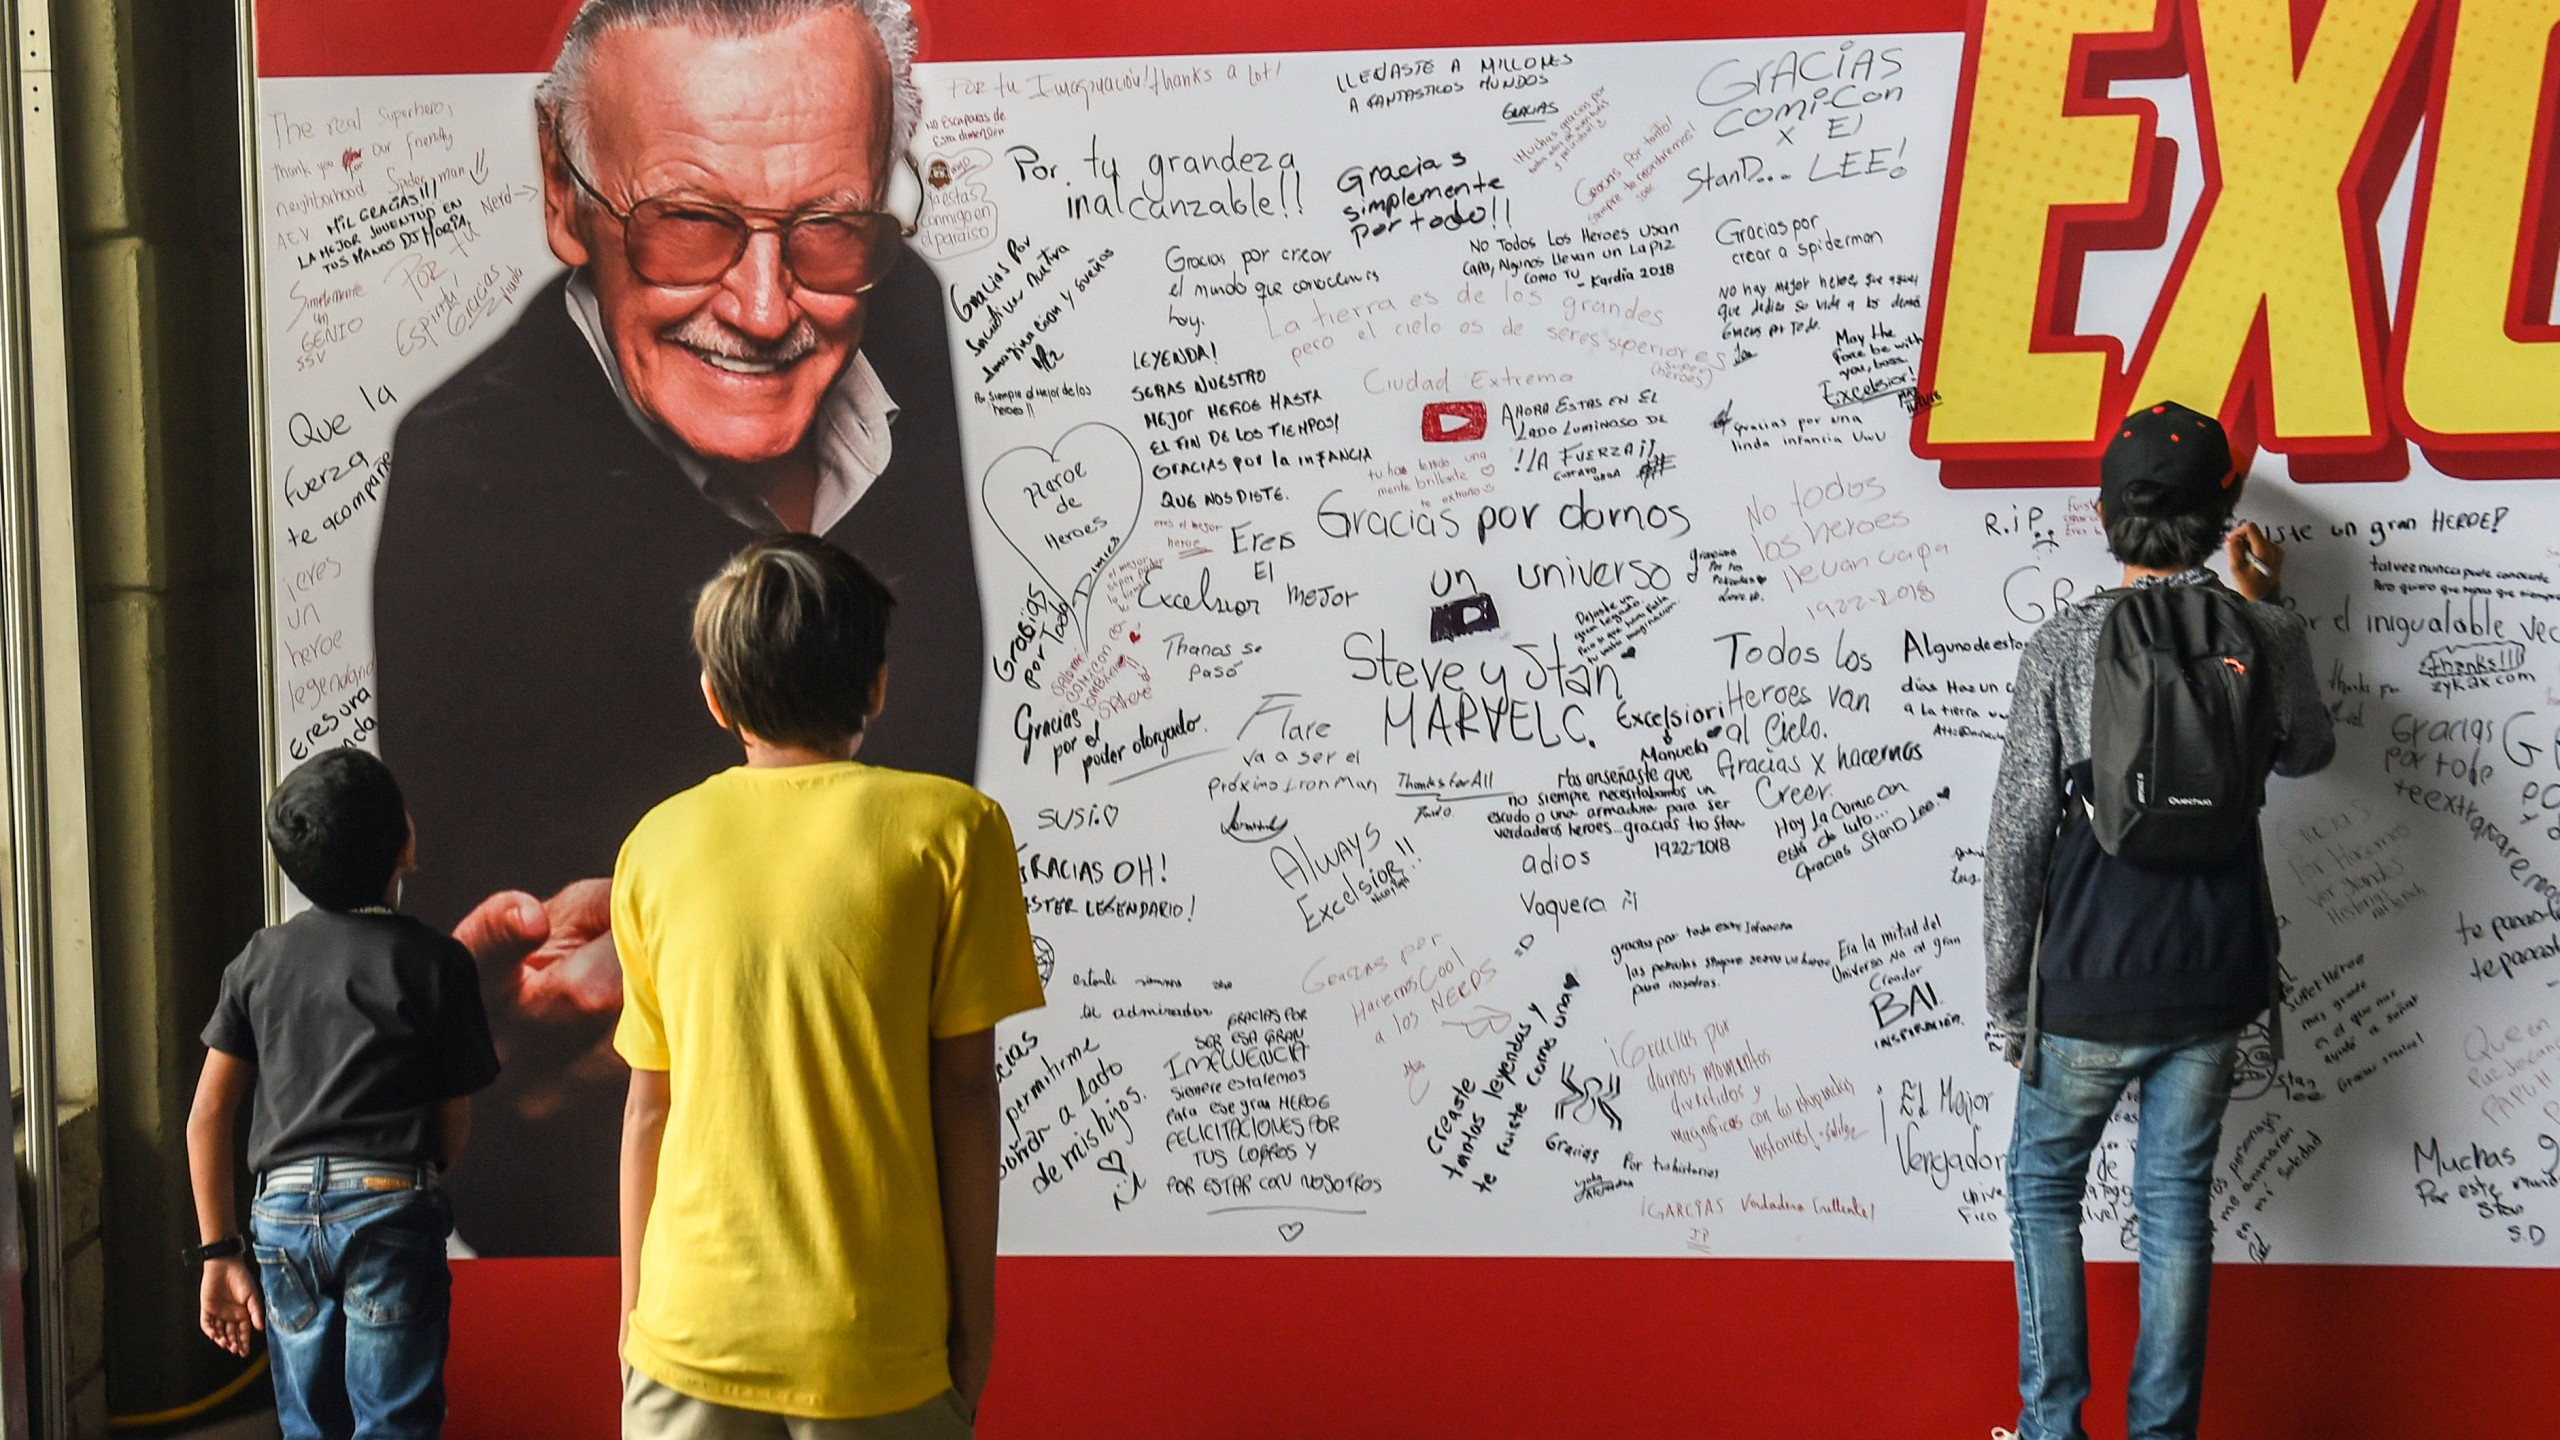 Gaming, comic and movie fans pay tribute to Stan Lee's memory during the Comic Con Colombia 2018 in Medellin on Nov. 16, 2018. (Credit: Joaquin Sarmiento / AFP / Getty Images)